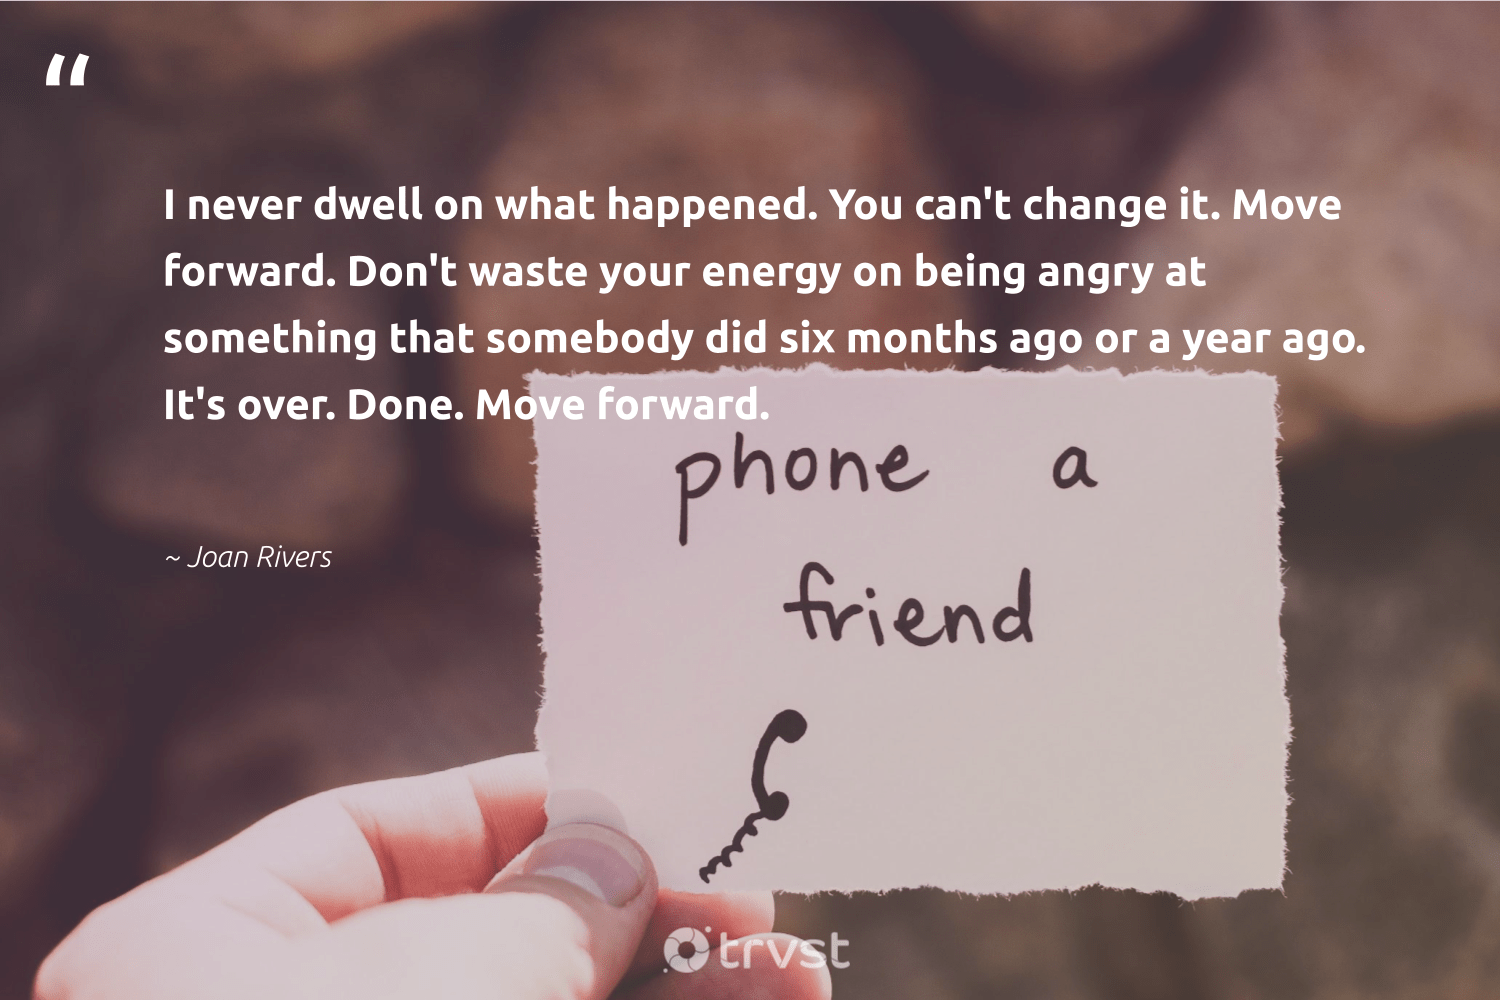 """""""I never dwell on what happened. You can't change it. Move forward. Don't waste your energy on being angry at something that somebody did six months ago or a year ago. It's over. Done. Move forward.""""  - Joan Rivers #trvst #quotes #waste #energy #togetherwecan #collectiveaction #begreat #gogreen #changemakers #bethechange #health #socialchange"""